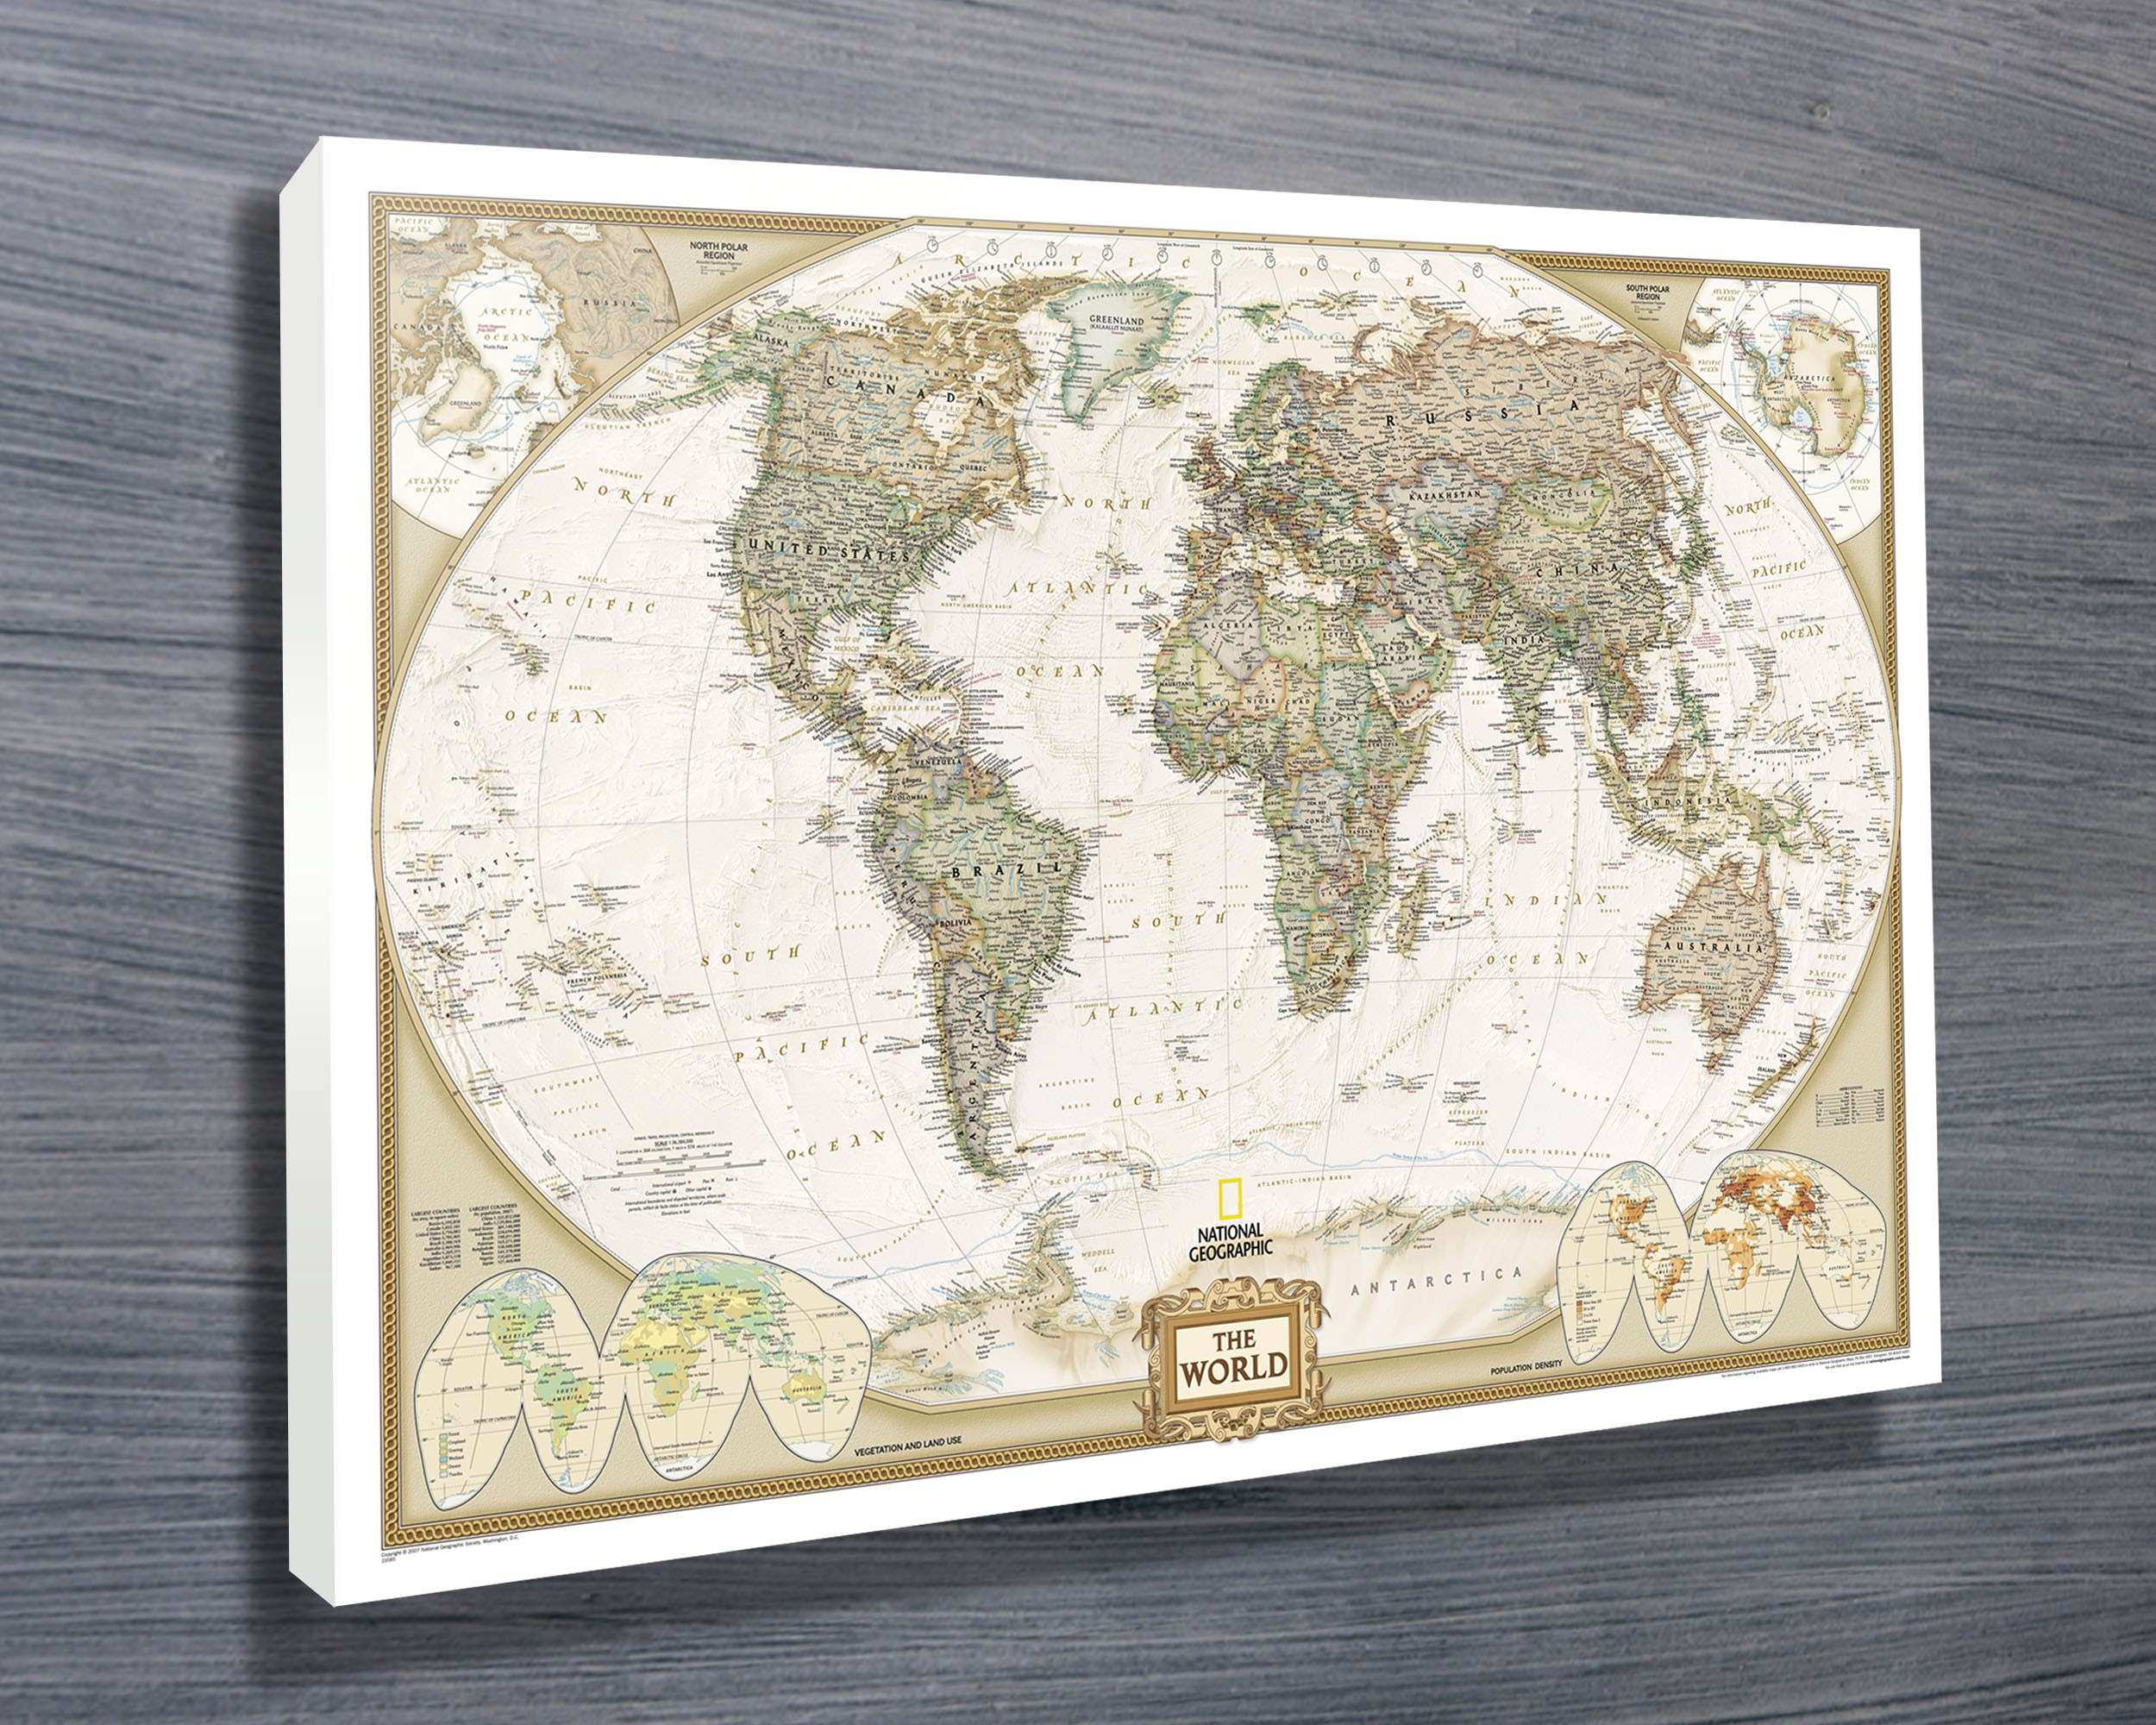 World map canvas wall art unique national geographic map canvas world map canvas wall art unique national geographic map canvas prints australia gumiabroncs Images